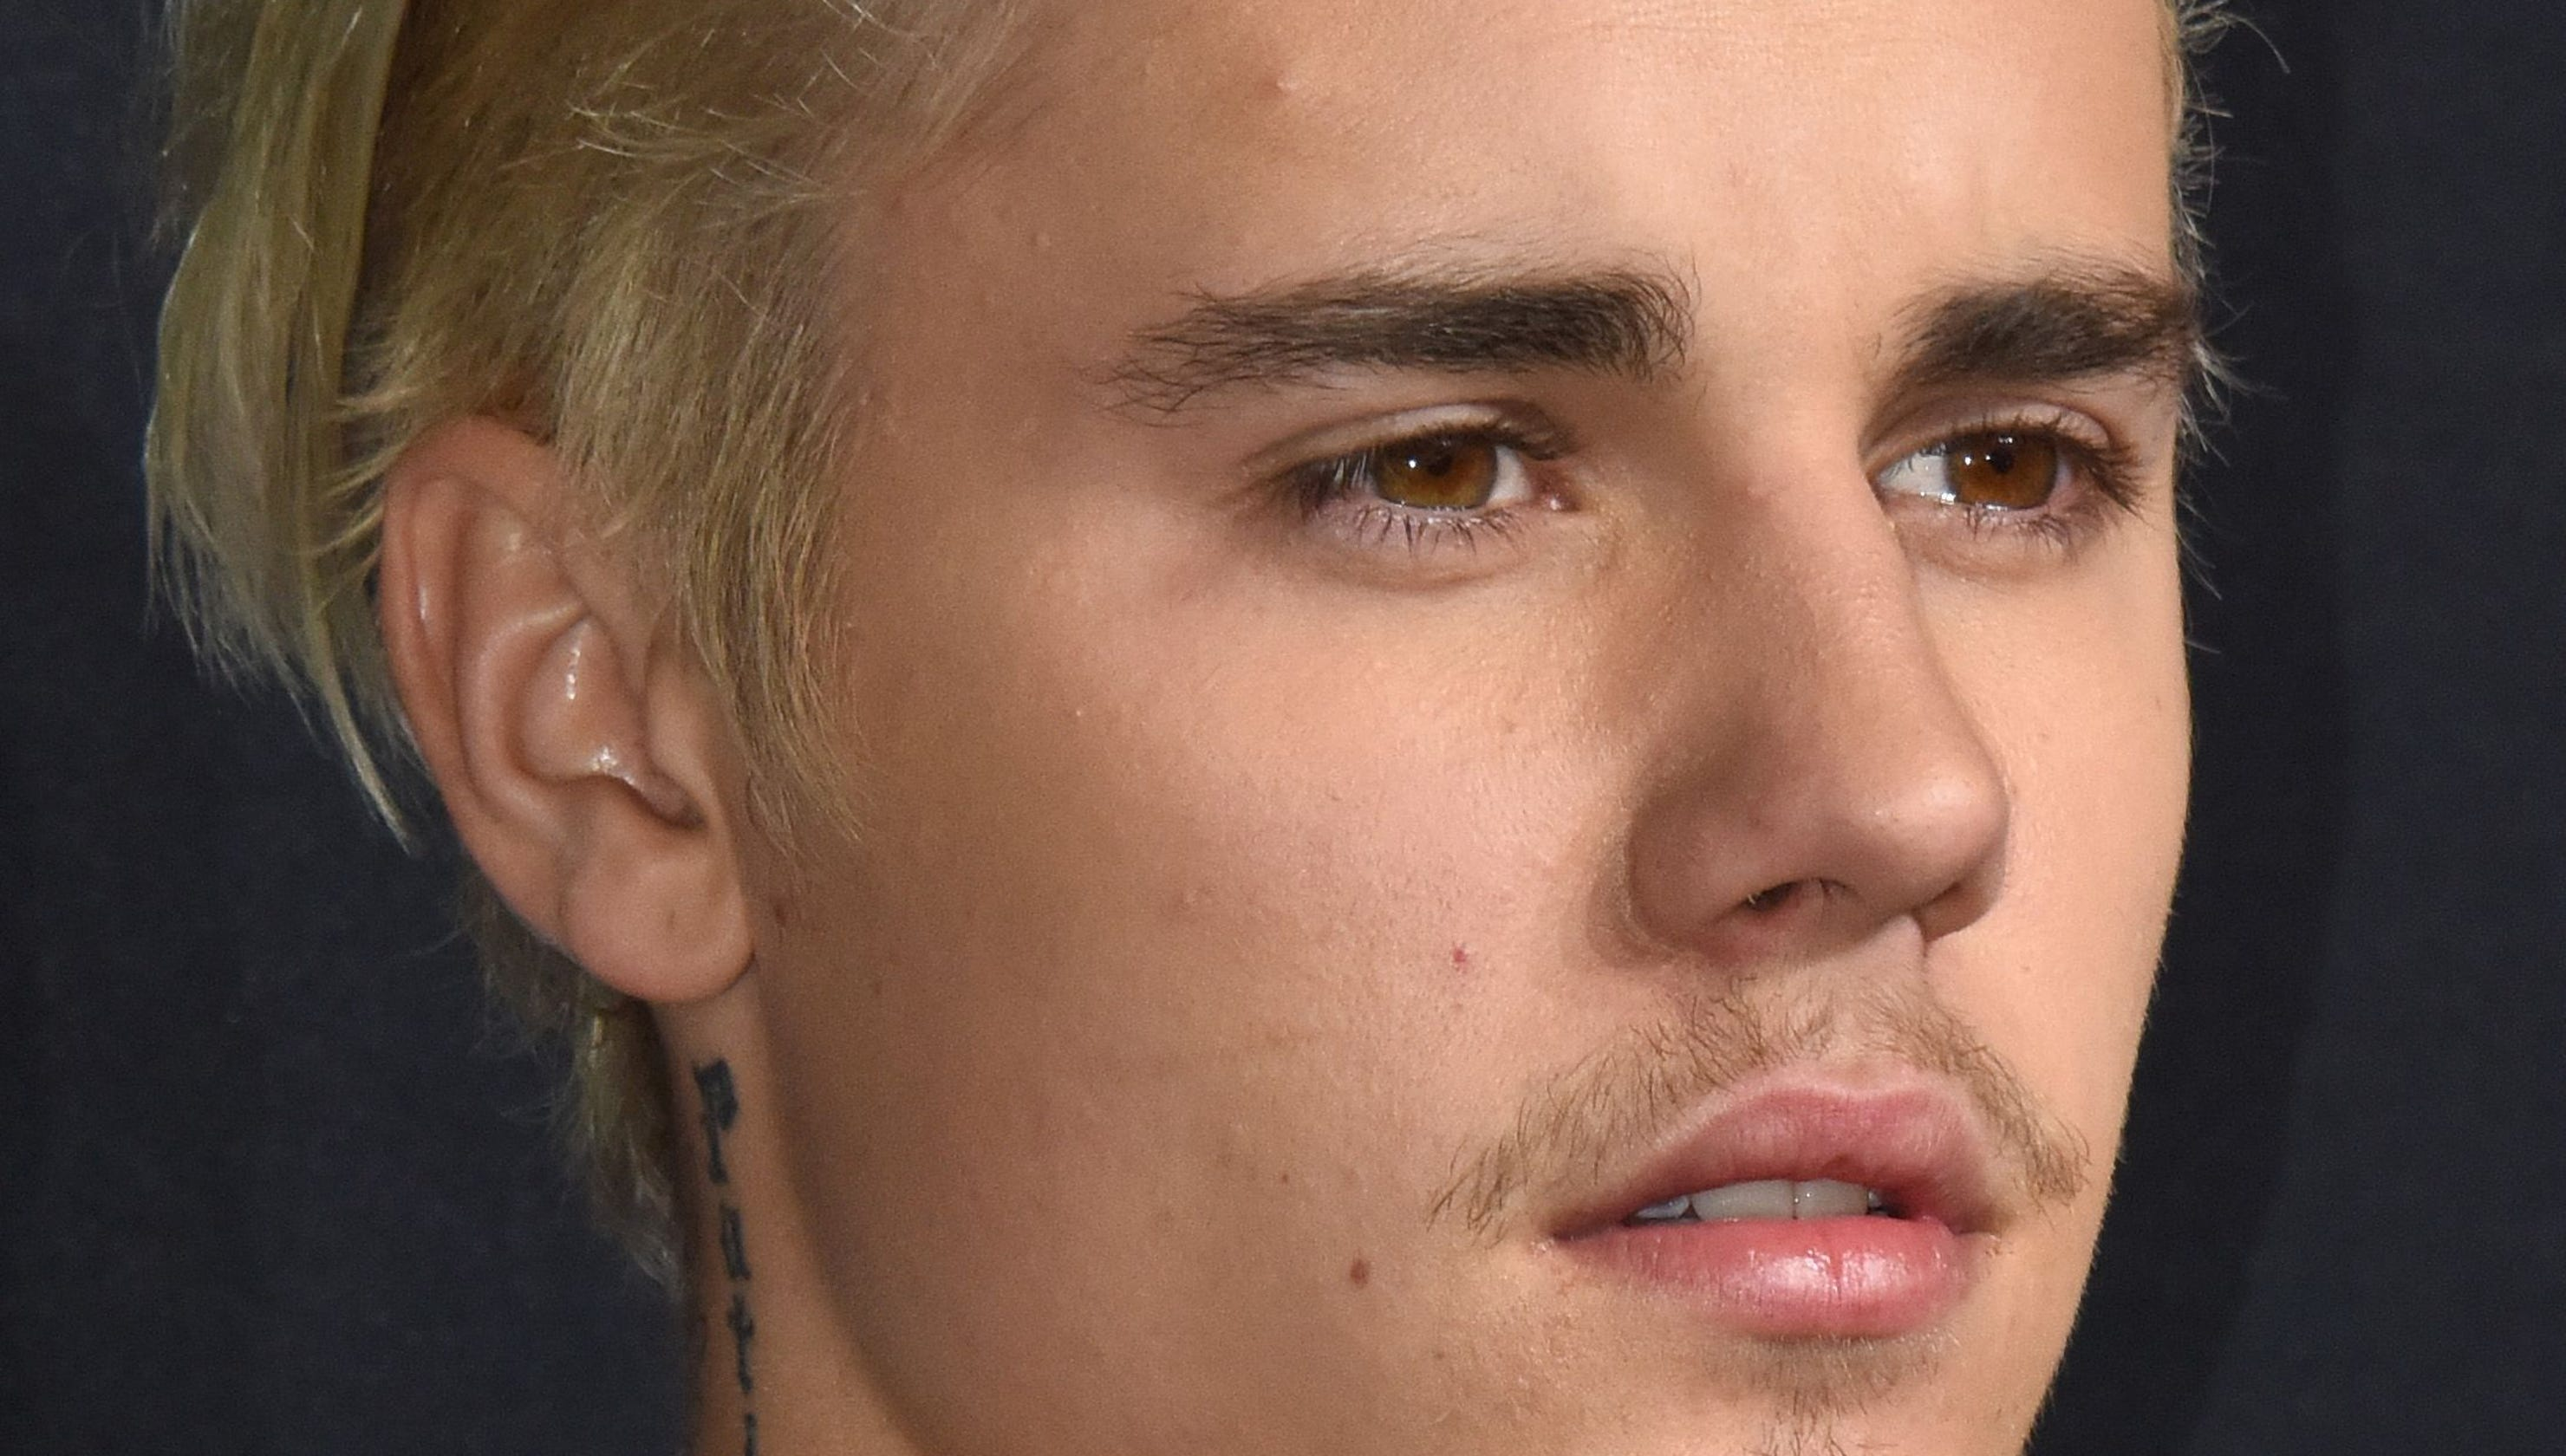 Justin Bieber defends himself after being accused of lip-syncing at Coachella